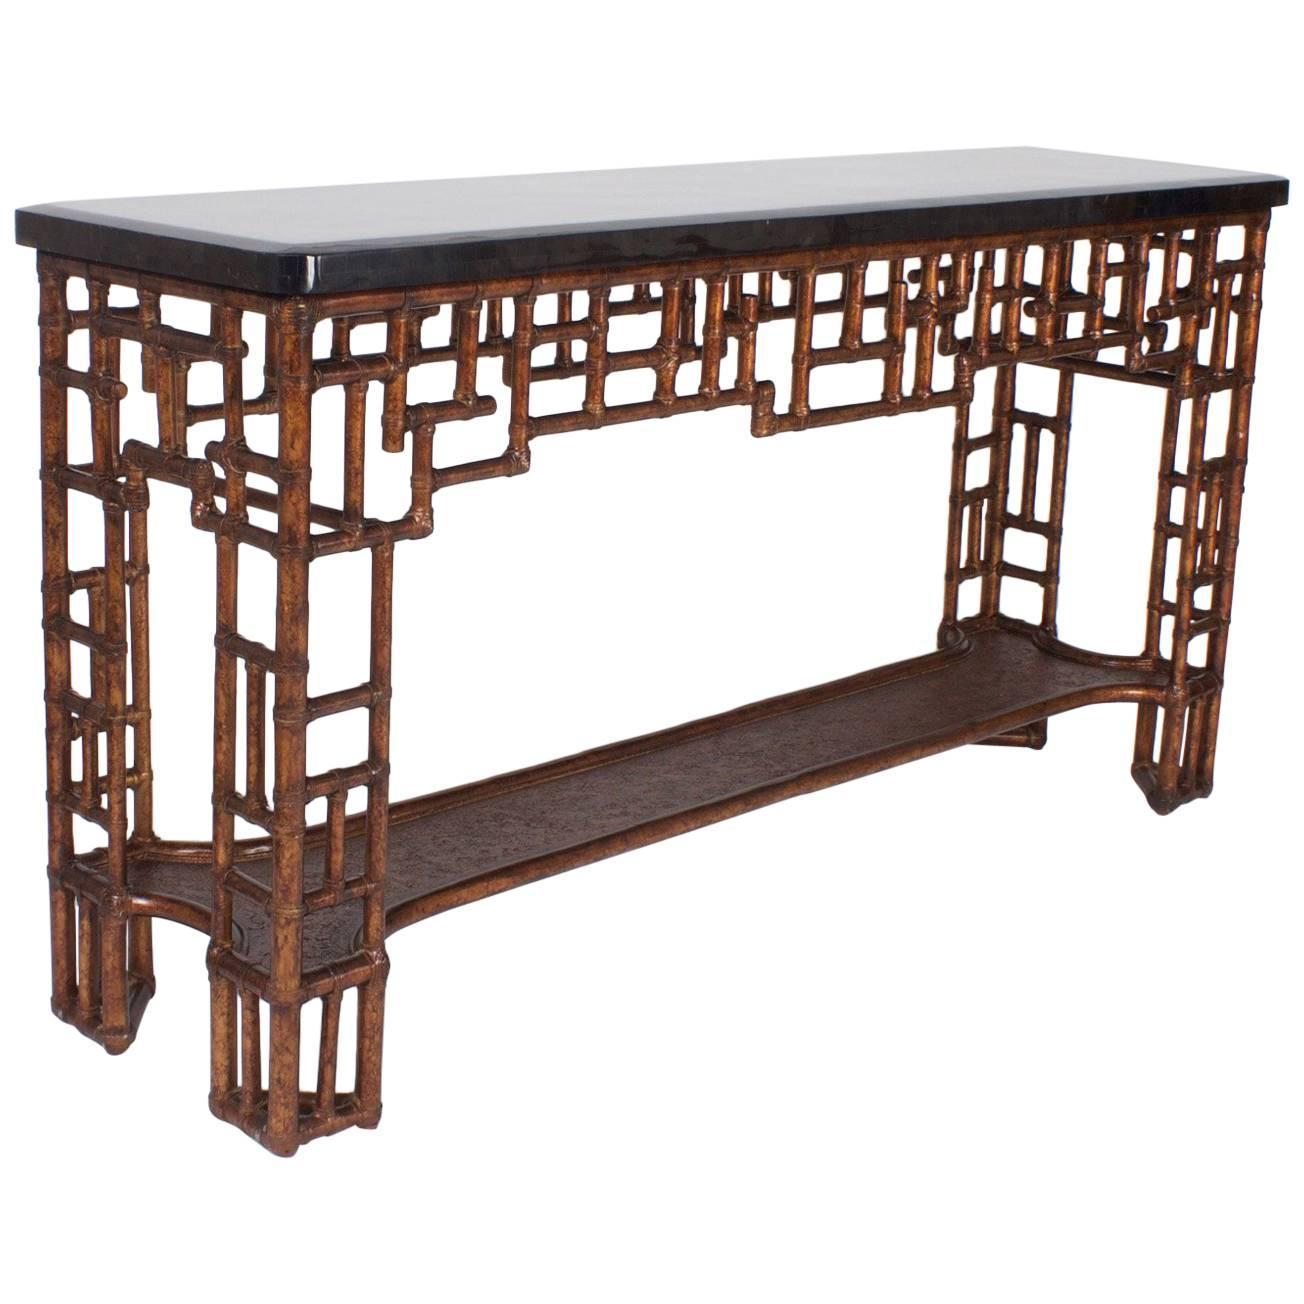 Mid Century Chinese Chippendale Style Console Table For Sale at 1stdibs